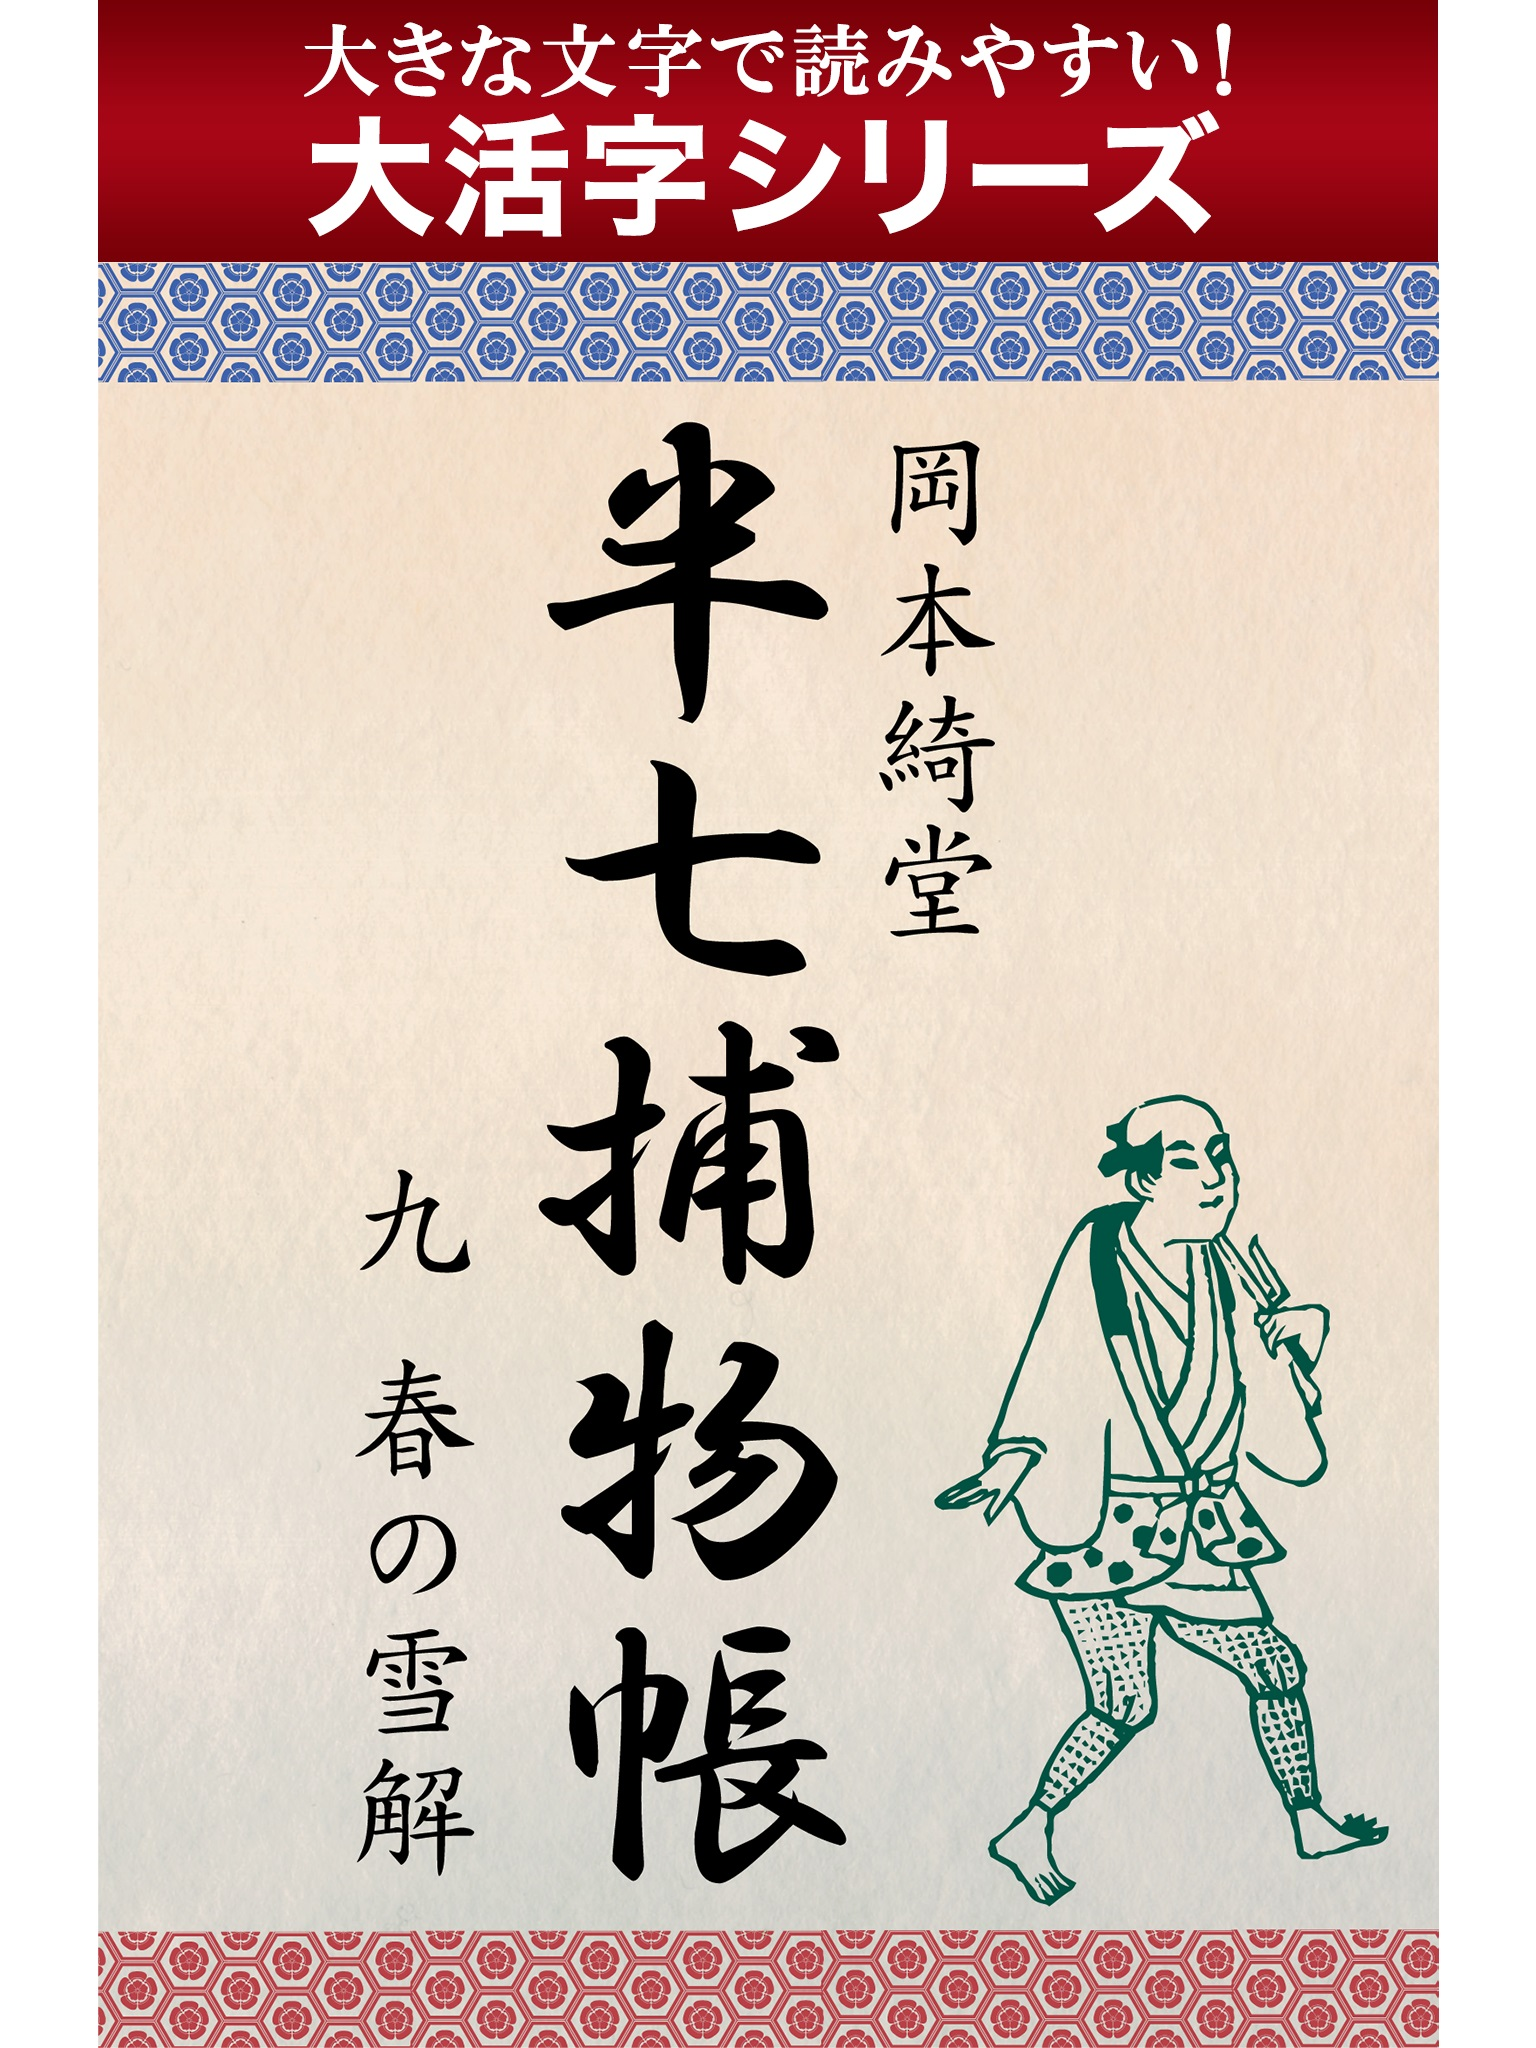 【androidkindle端末対応 大活字シリーズ】半七捕物帳 九 春の雪解